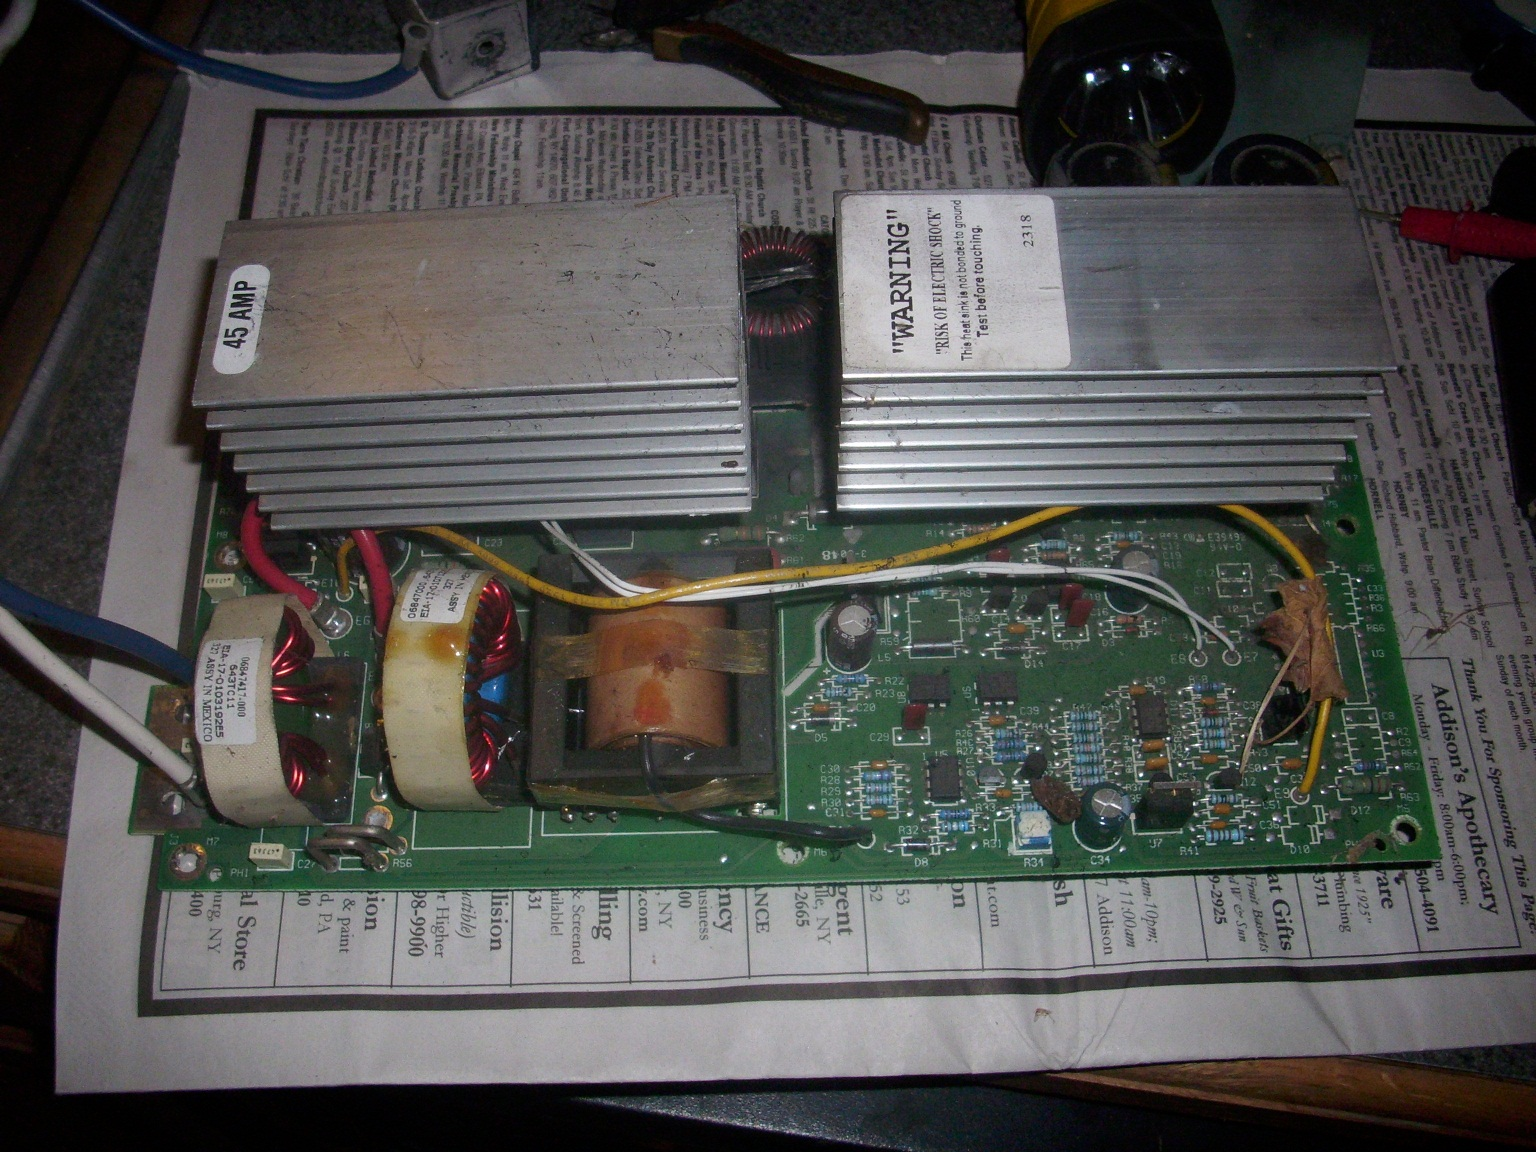 WRG-2570] Parallax Converter Wiring Diagram on cooper wiring diagram, sullair wiring diagram, smc wiring diagram, abb wiring diagram, clark wiring diagram, ingersoll rand wiring diagram, matrix wiring diagram, norton wiring diagram, apc wiring diagram, toshiba wiring diagram, taylor wiring diagram, little giant wiring diagram, demag wiring diagram, mettler toledo wiring diagram, yaskawa wiring diagram, panasonic wiring diagram, a.o. smith wiring diagram, viking wiring diagram, johnson controls wiring diagram, msi wiring diagram,